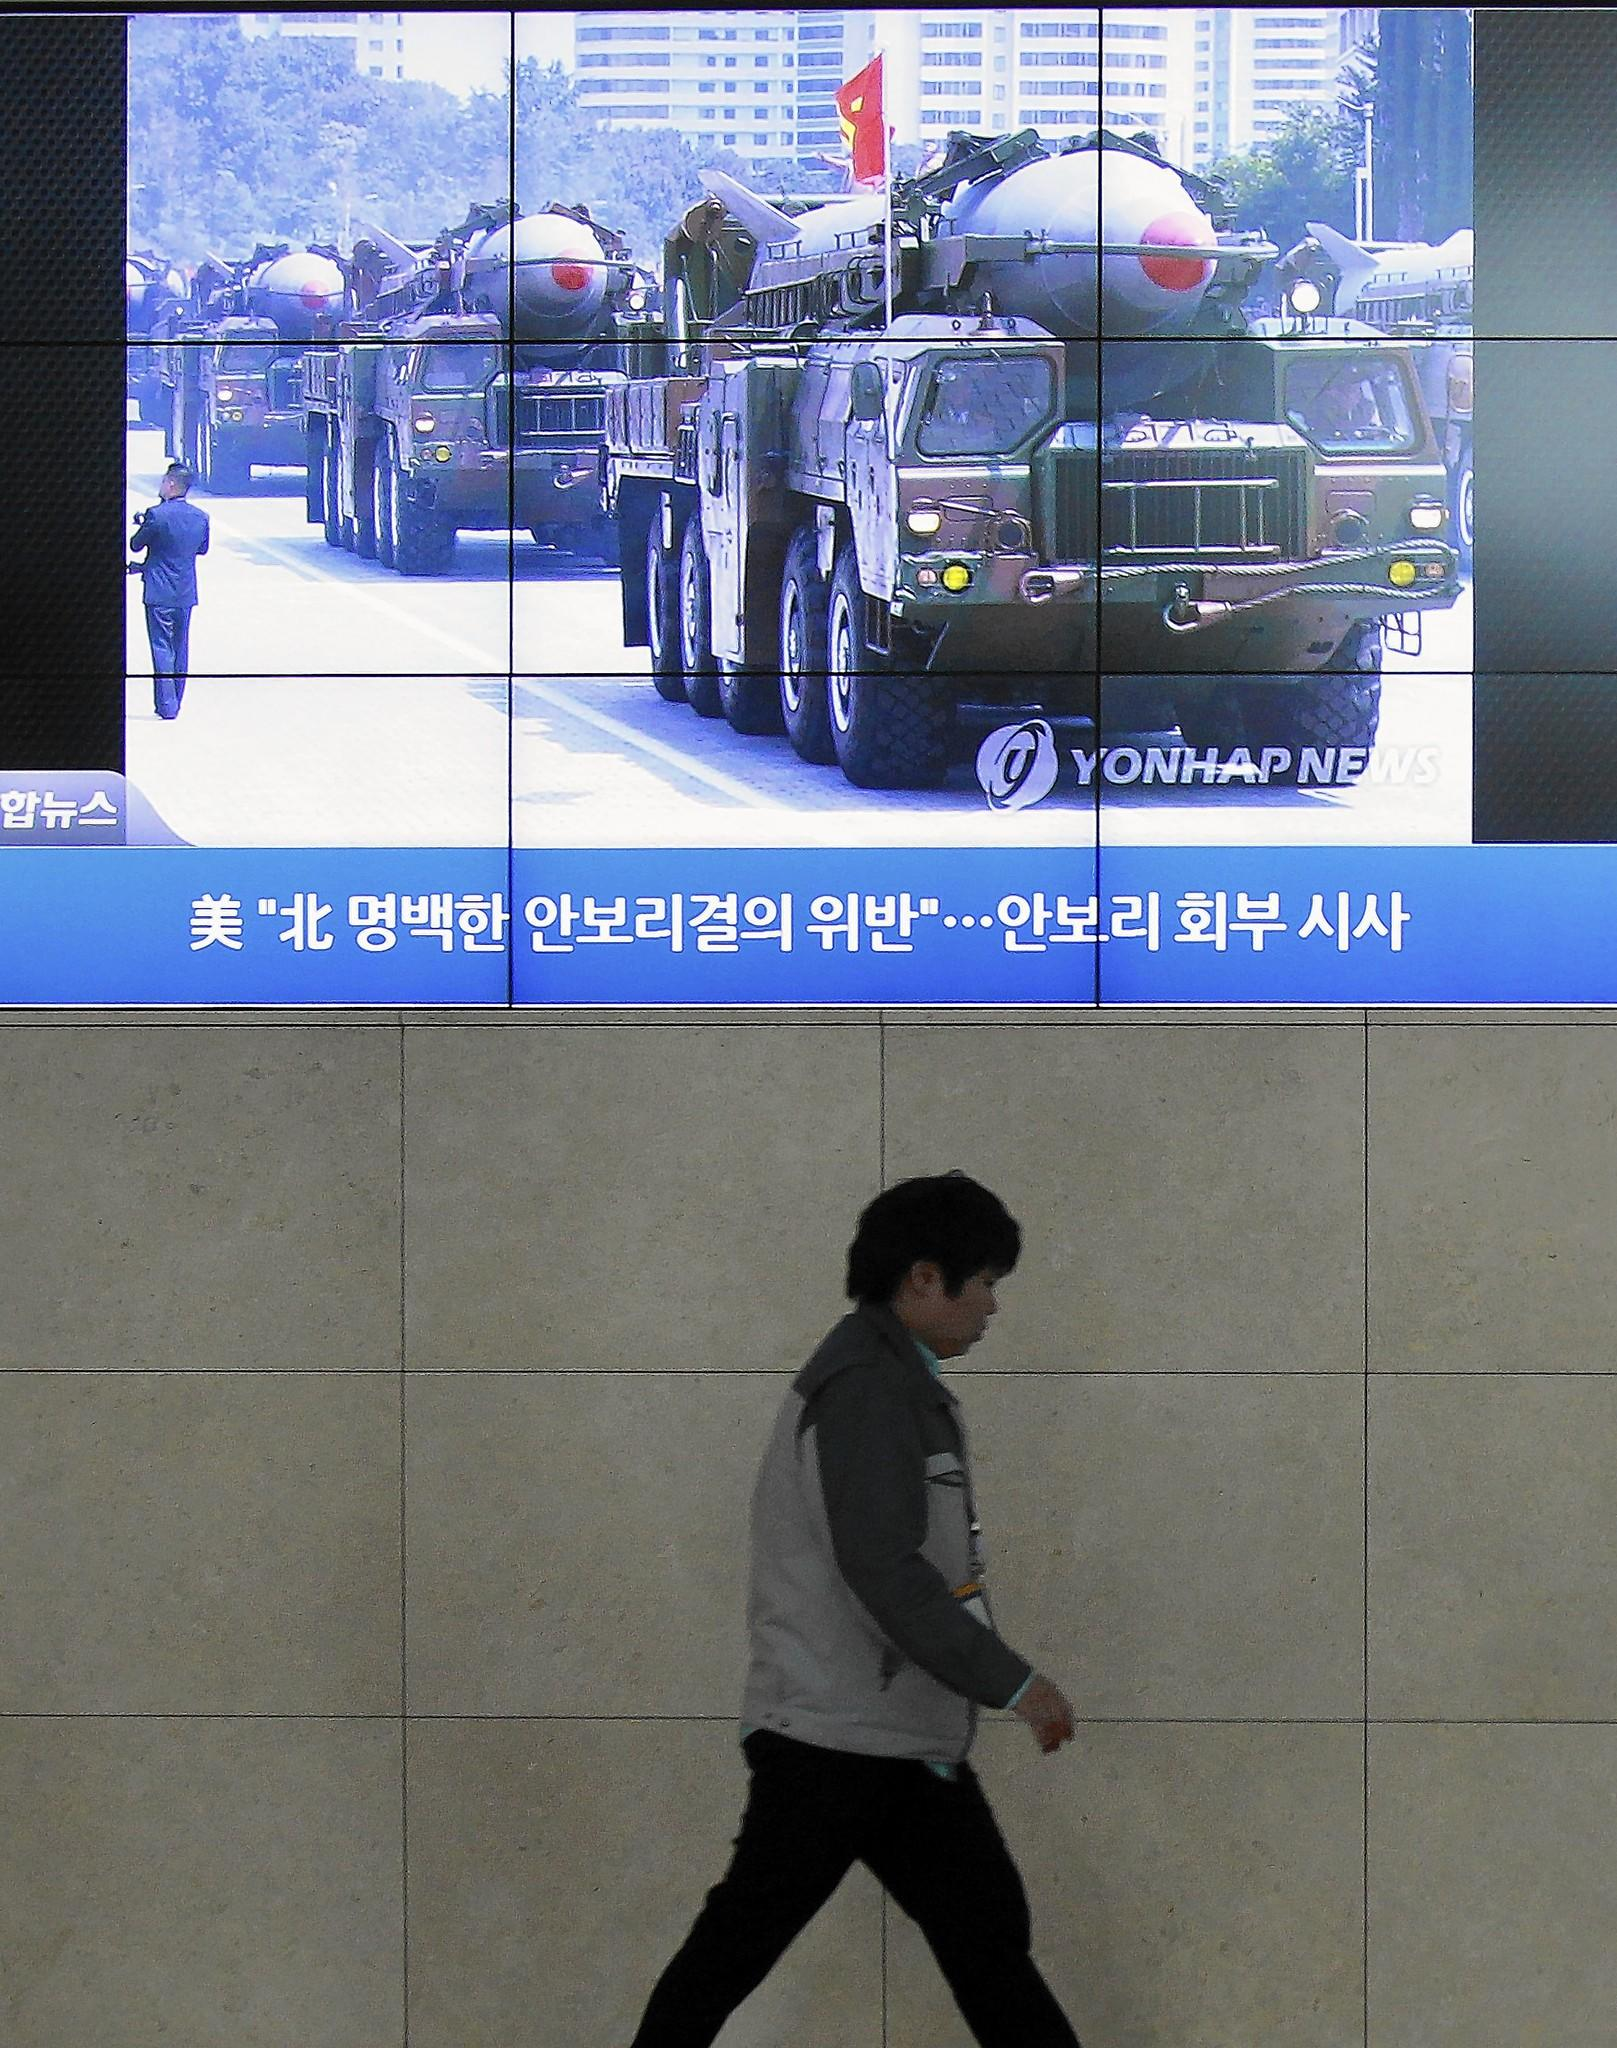 A giant screen in Seoul shows file footage of North Korean missiles in a military parade on a TV news program. North Korea test-launched two medium-range ballistic missiles Wednesday.